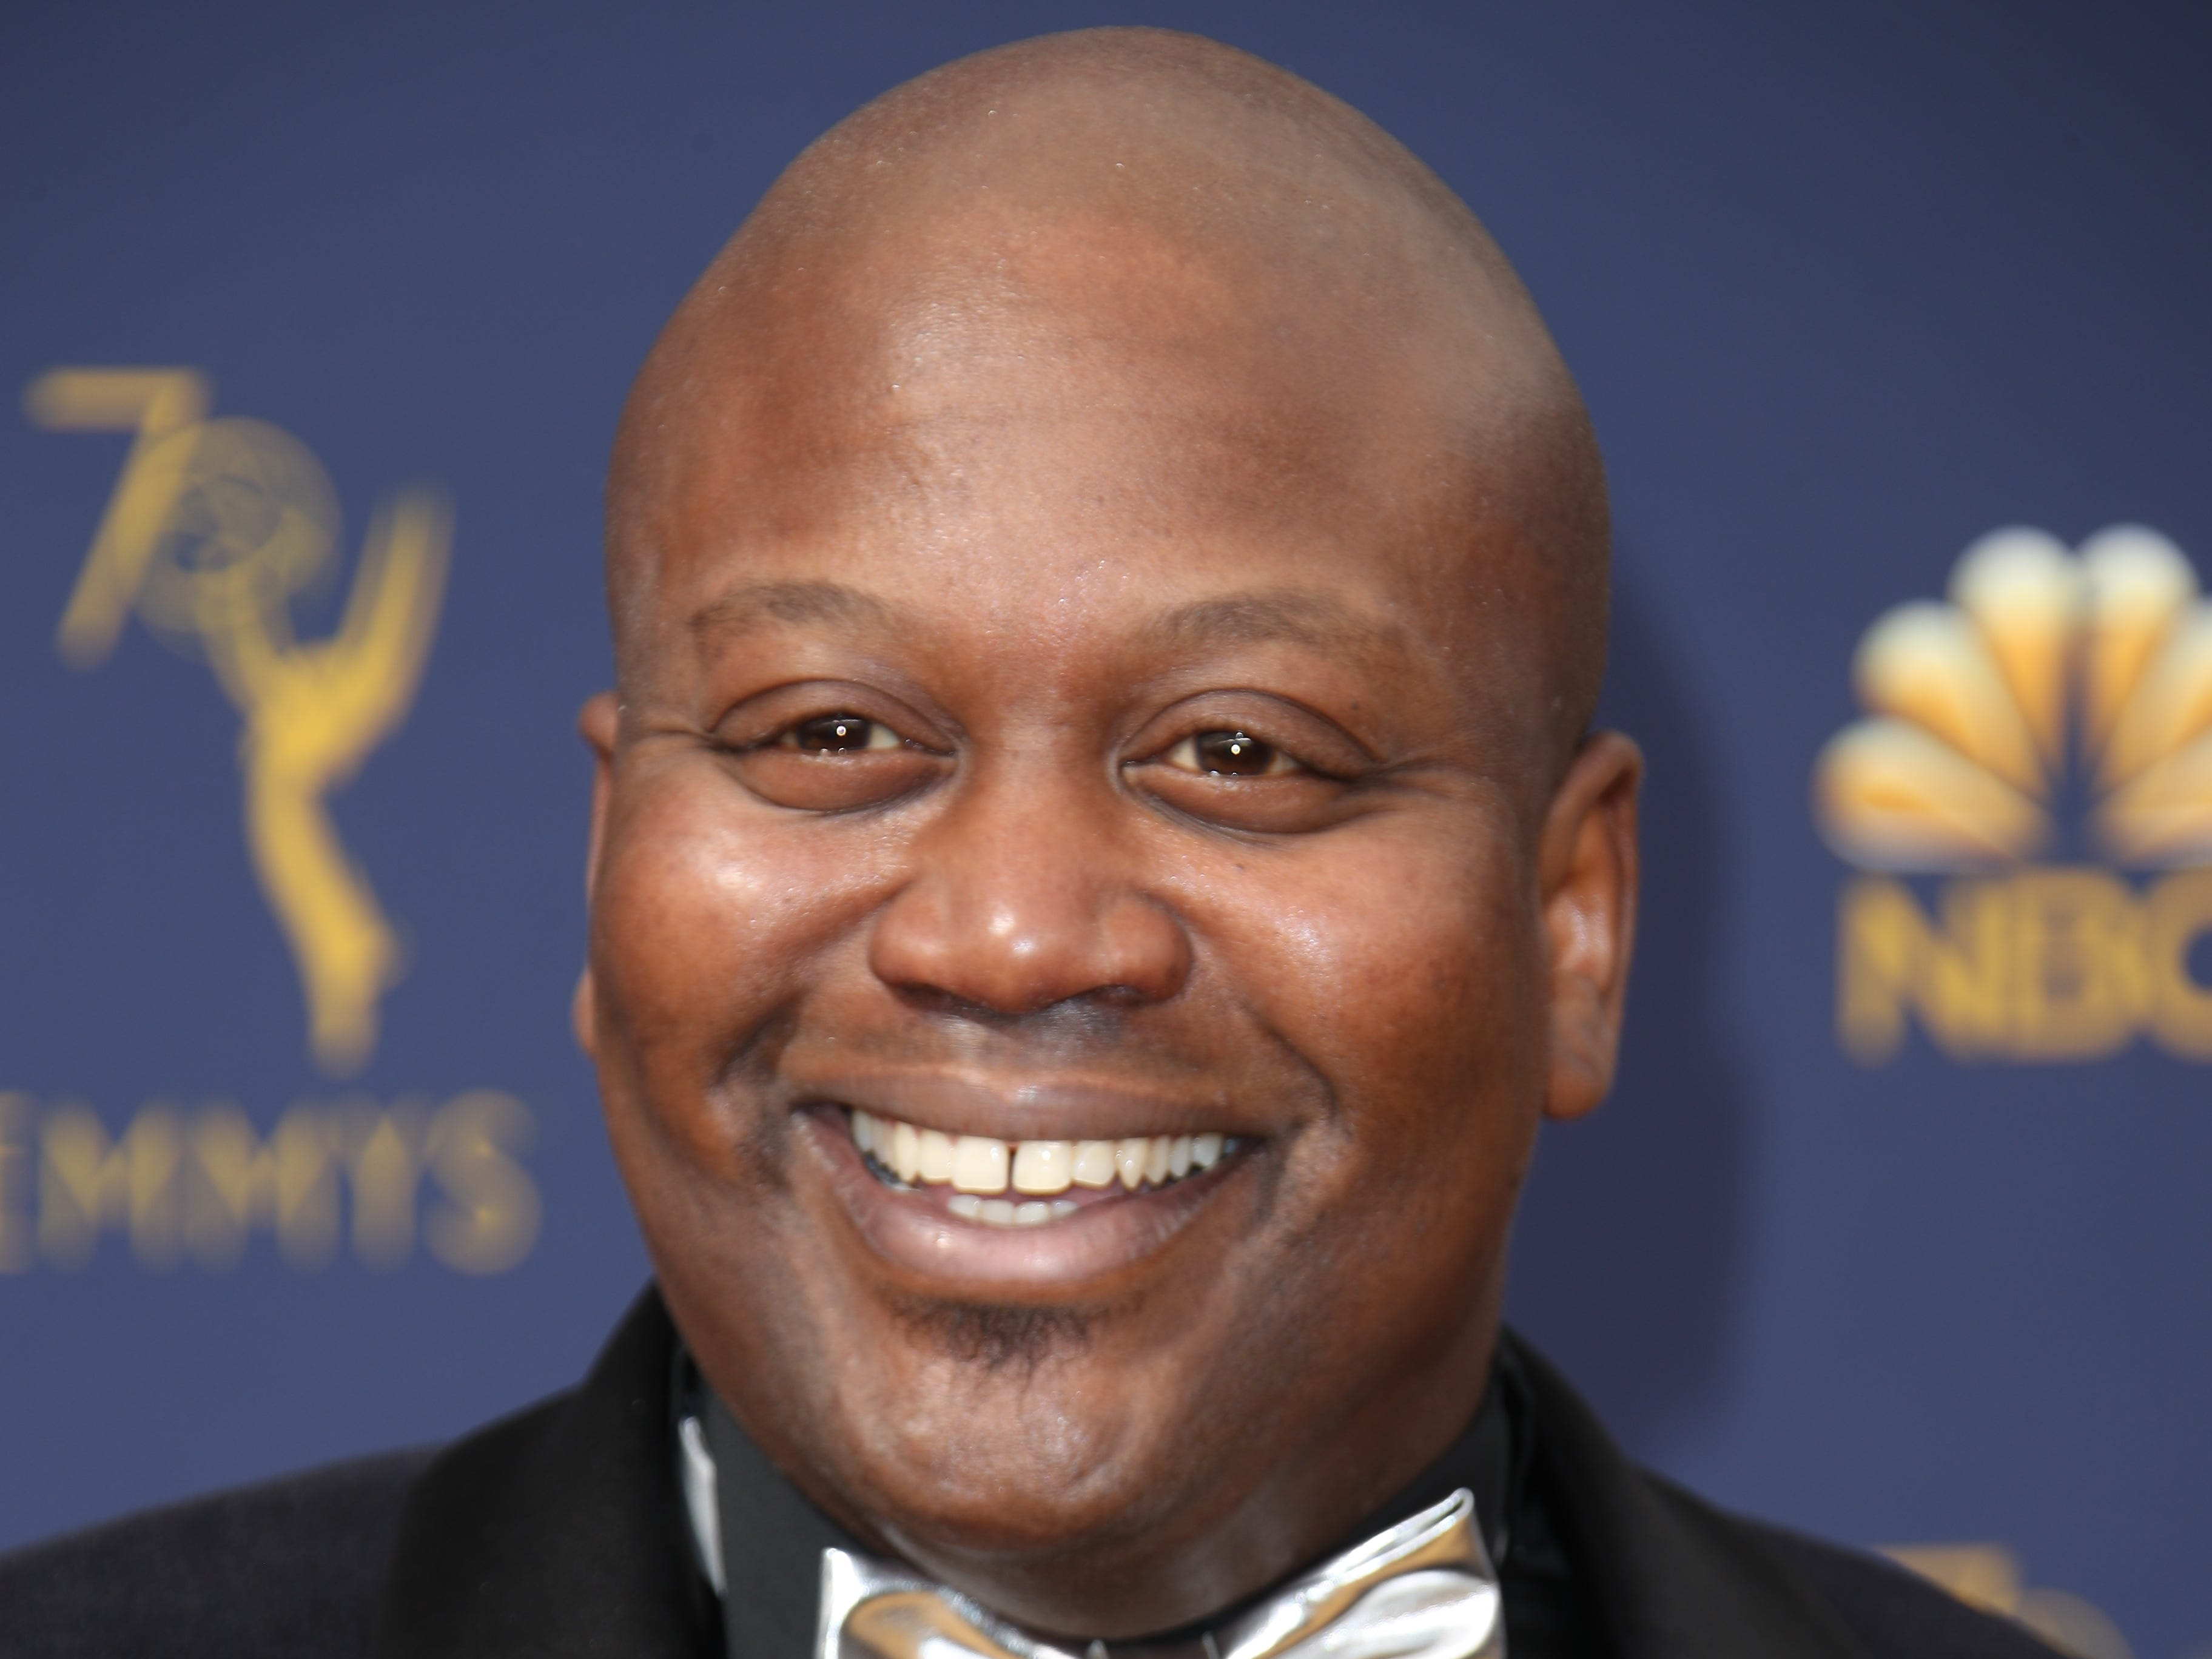 Sep 17, 2018; Los Angeles, CA, USA; Tituss Burgess arrives for the 70th Emmy Awards at the Microsoft Theater. Mandatory Credit: Dan MacMedan-USA TODAY (Via OlyDrop)